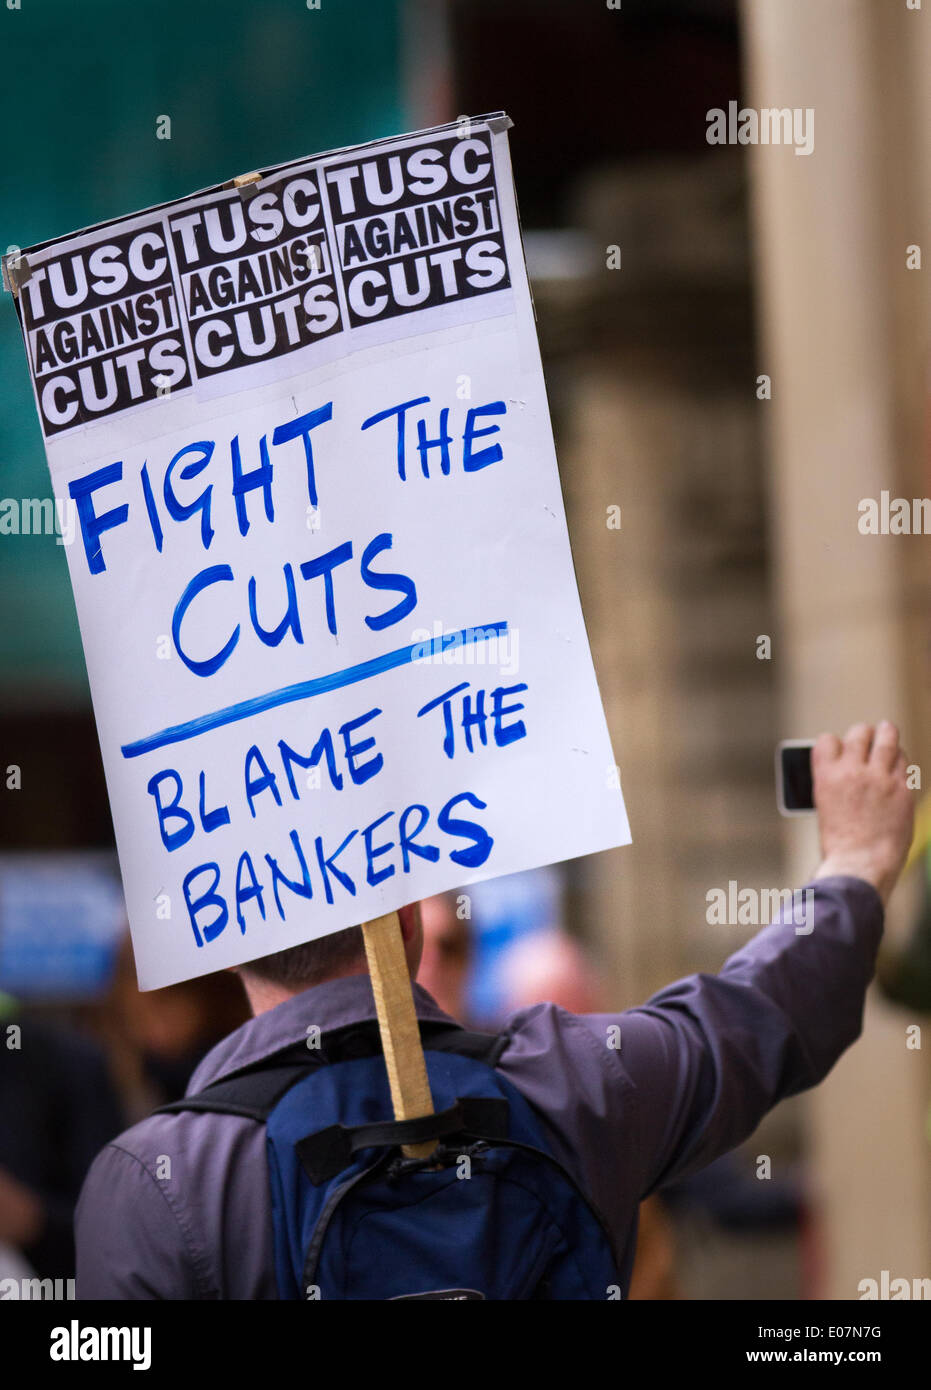 Salford, Manchester, UK  5th May, 2014. Placard TUSC against the cuts.  'Fight the Cuts.  Blame the Bankers' poster at Salford's annual May Day Rally.  Manchester, Salford, Bury and Oldham Trades Union Councils organized this year's May Day event in Manchester, with the message `A Better Future for All Our Communities' to celebrate international workers day. Workers gathered at Bexley Square to hear speakers prior to marching to Cathedral Gardens. The themes this year included opposition to cuts, the Bedroom Tax and fracking. - Stock Image